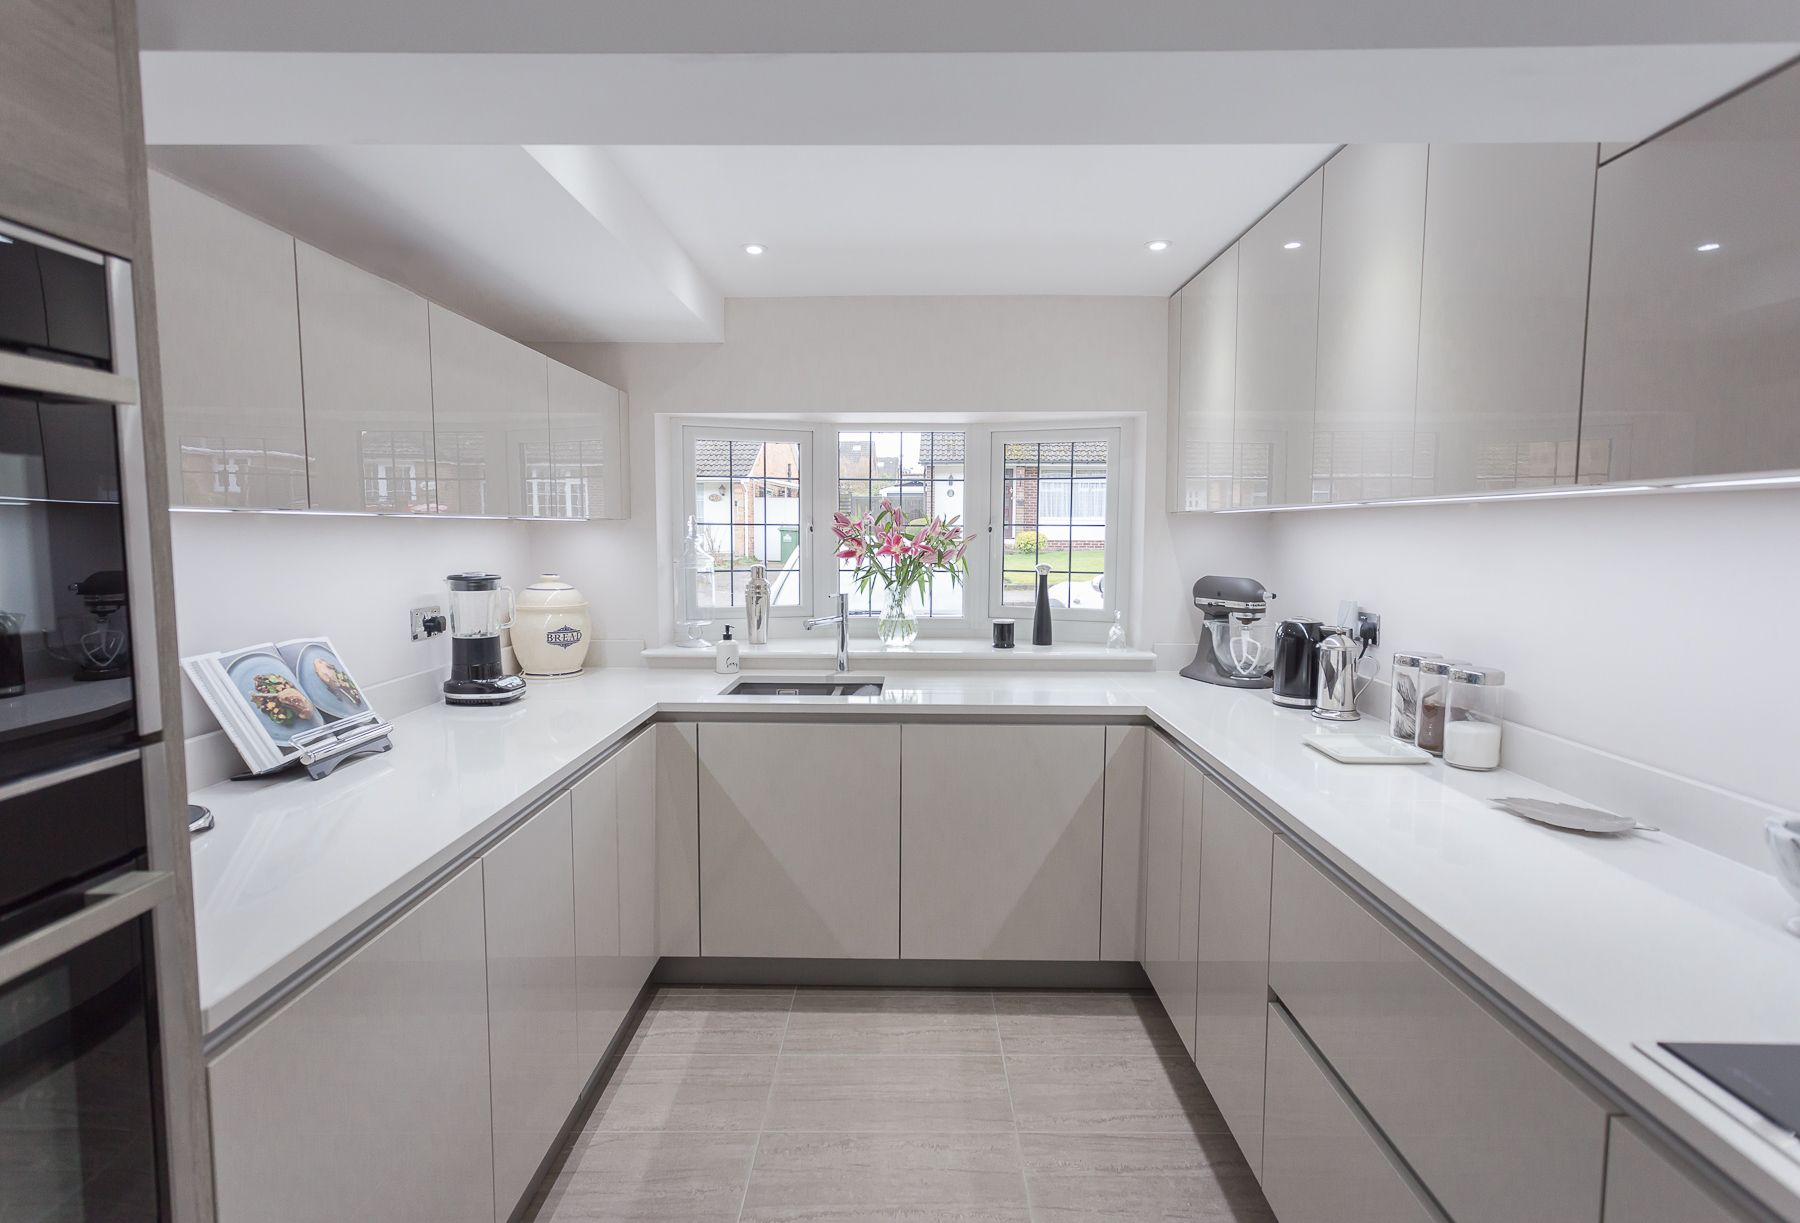 Our Nolte Handleless Lux Kitchen With Artwood Doors To Add Contrast Sleek And Sophisticated This Kitchen Has A Modern Yet Timeless Feel Nolte Kuche Kuche